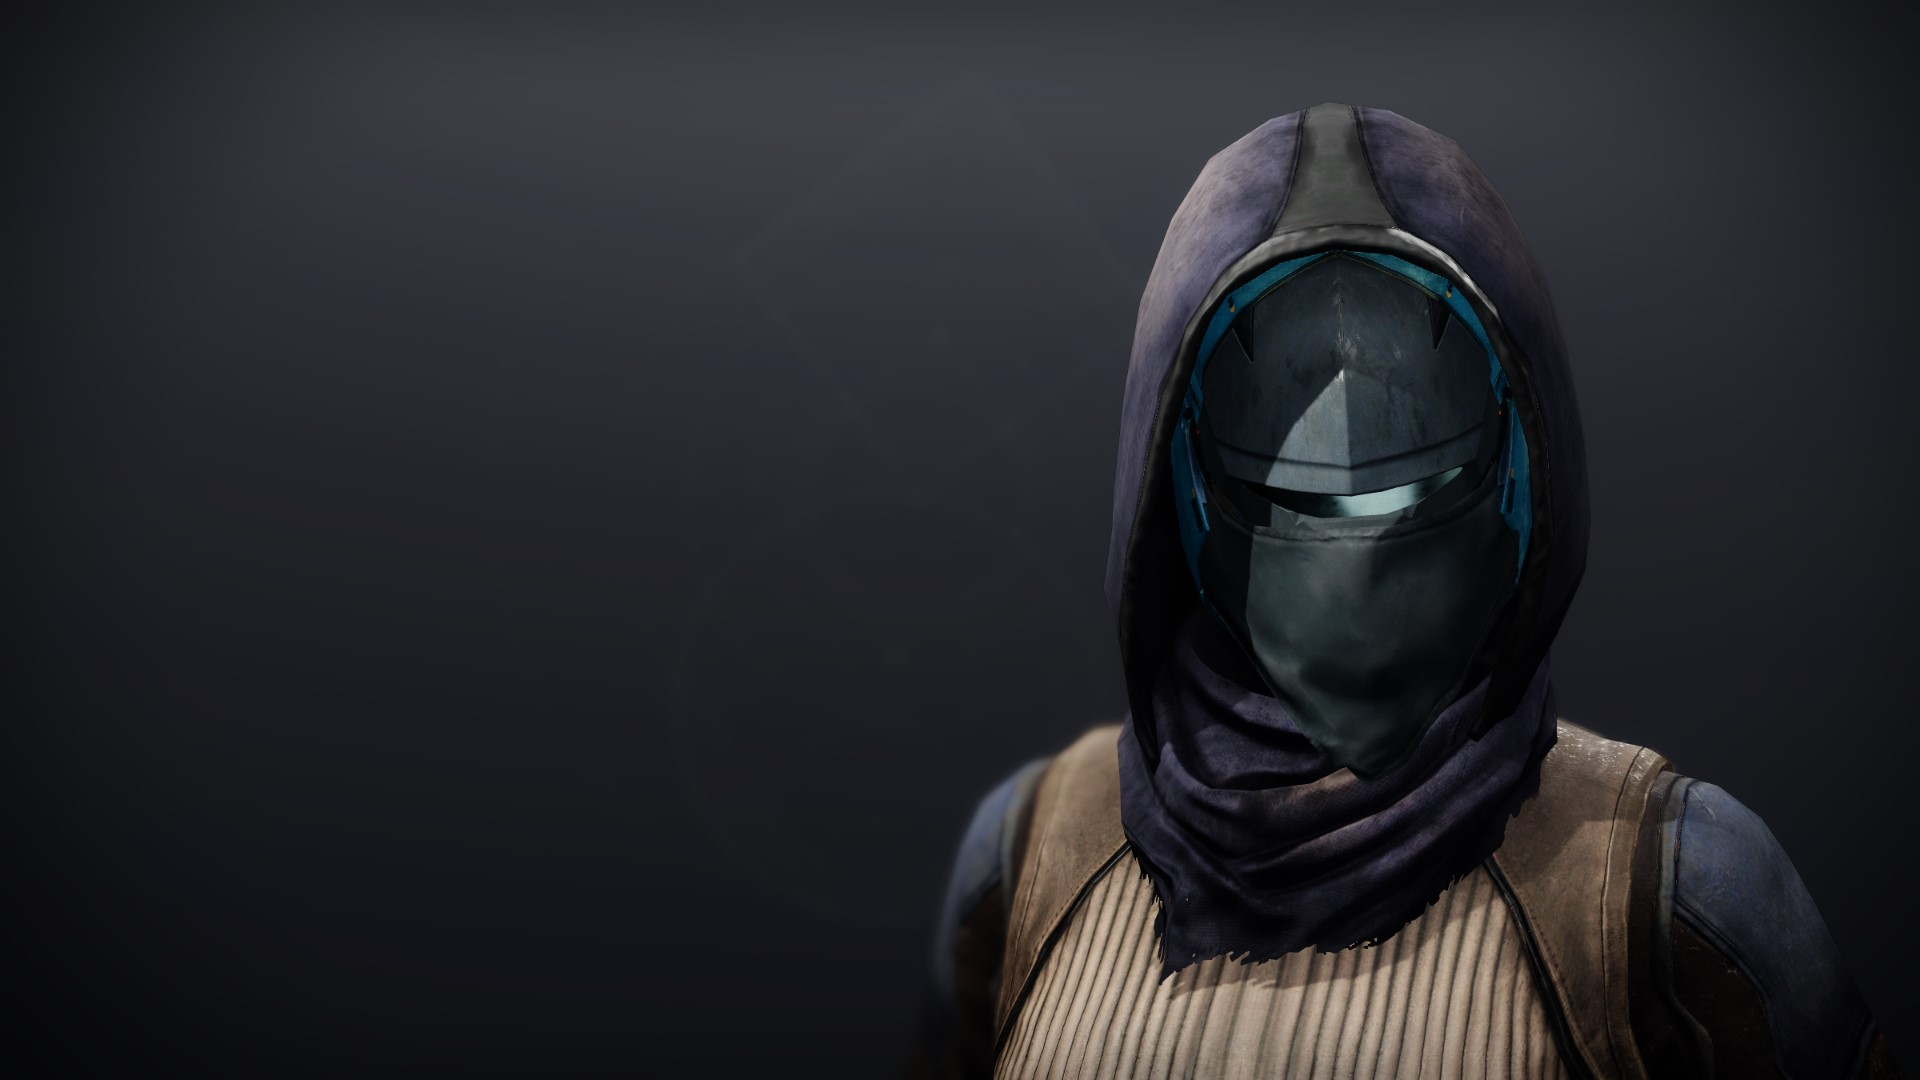 An in-game render of the Frumious Mask.